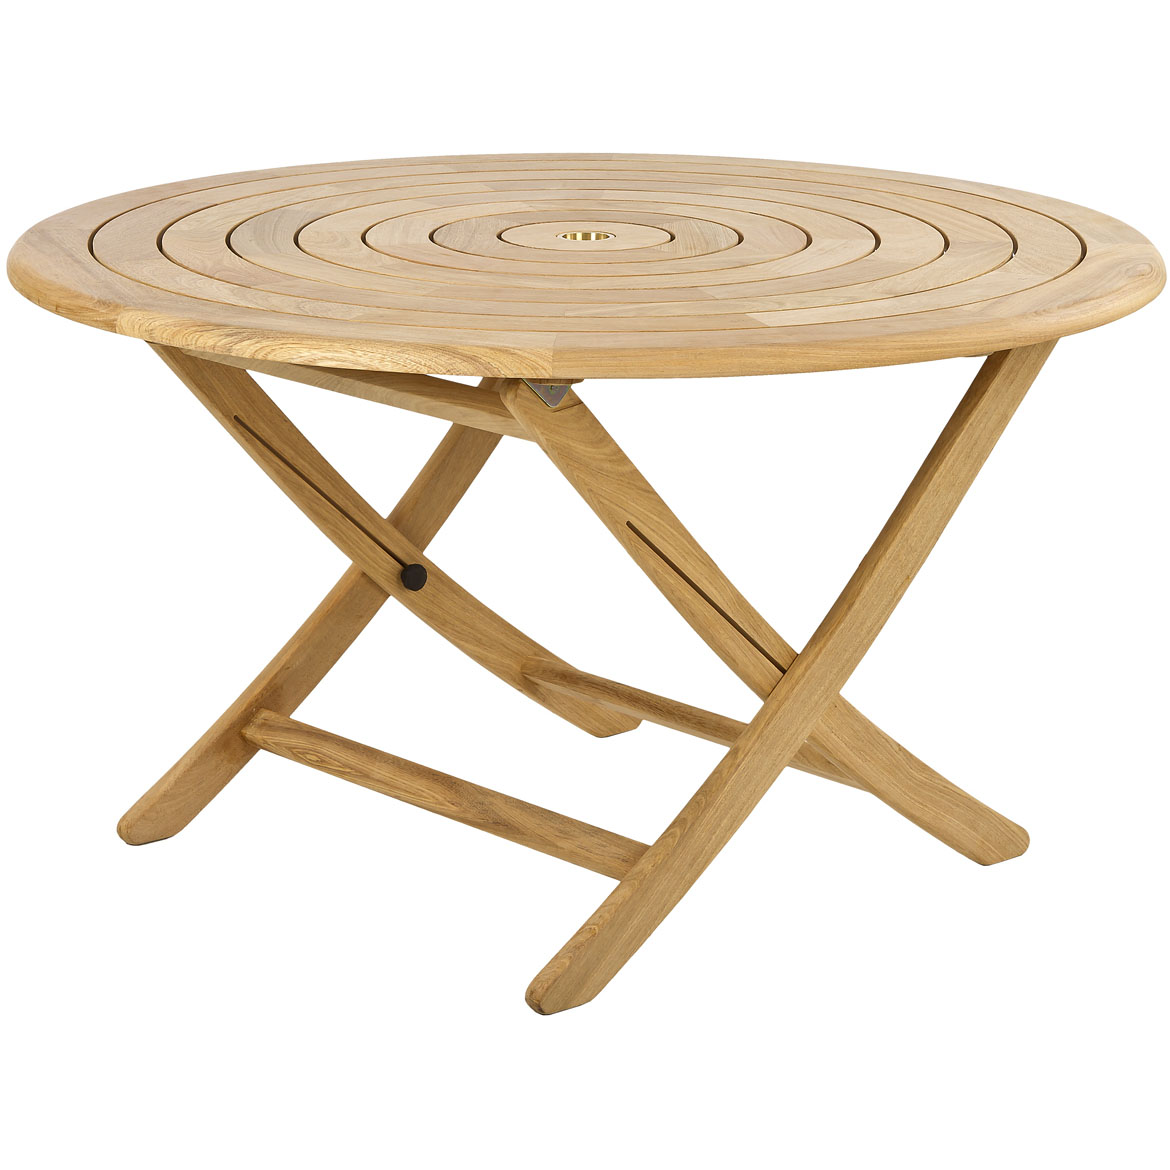 https://www.firstfurniture.co.uk/pub/media/catalog/product/a/l/alexander_rose_roble_130cm_bengal_table_a_ss_1.jpg